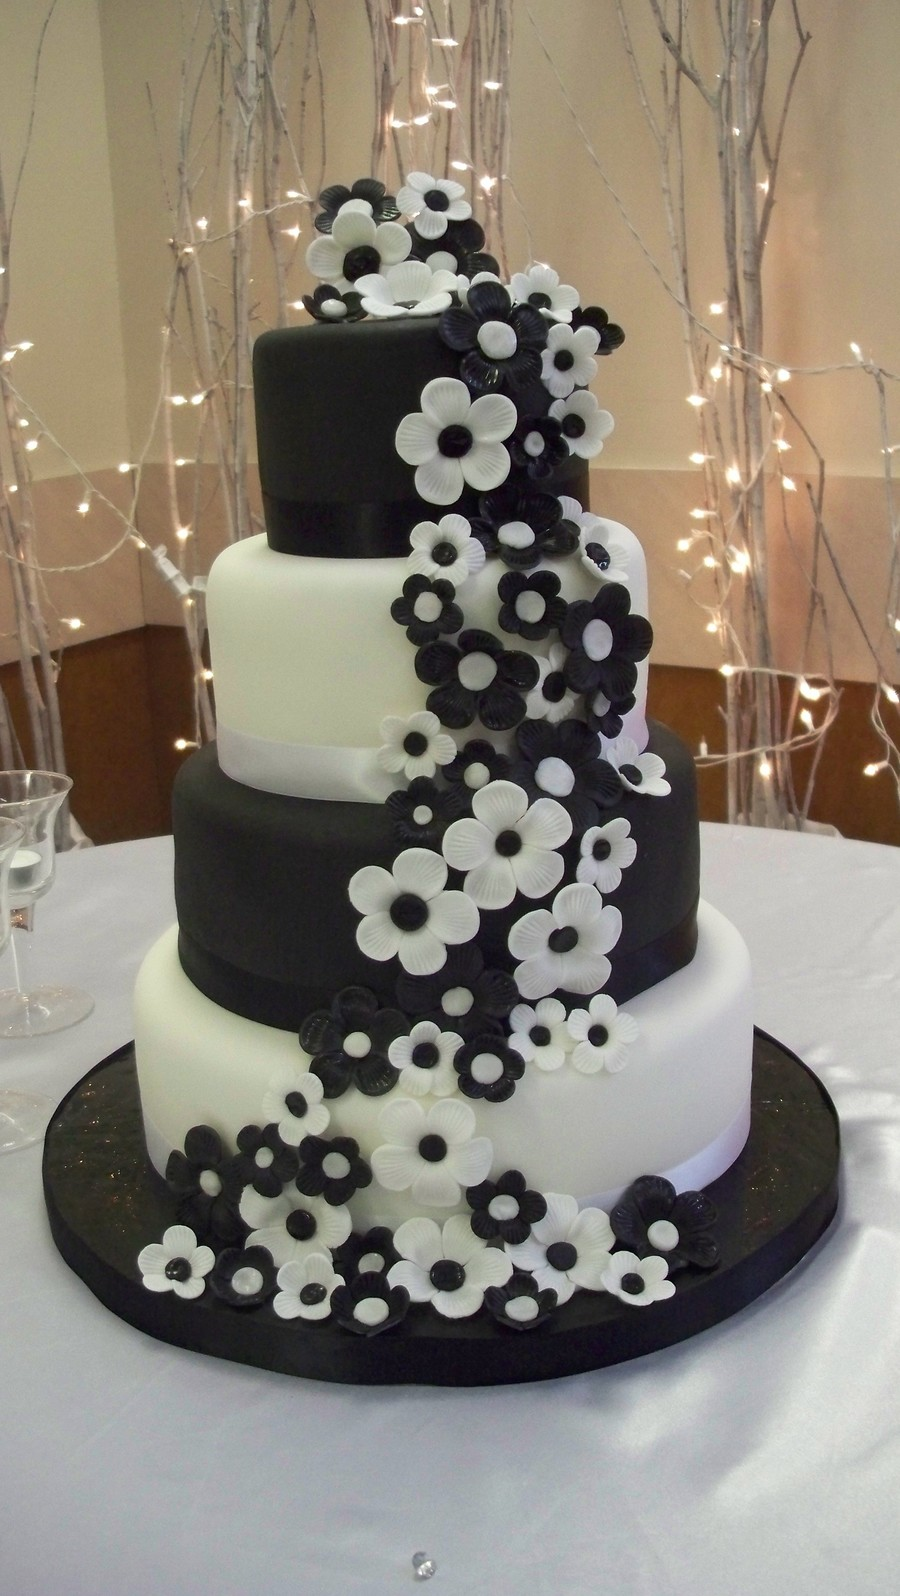 How To Make A Professional Wedding Cake